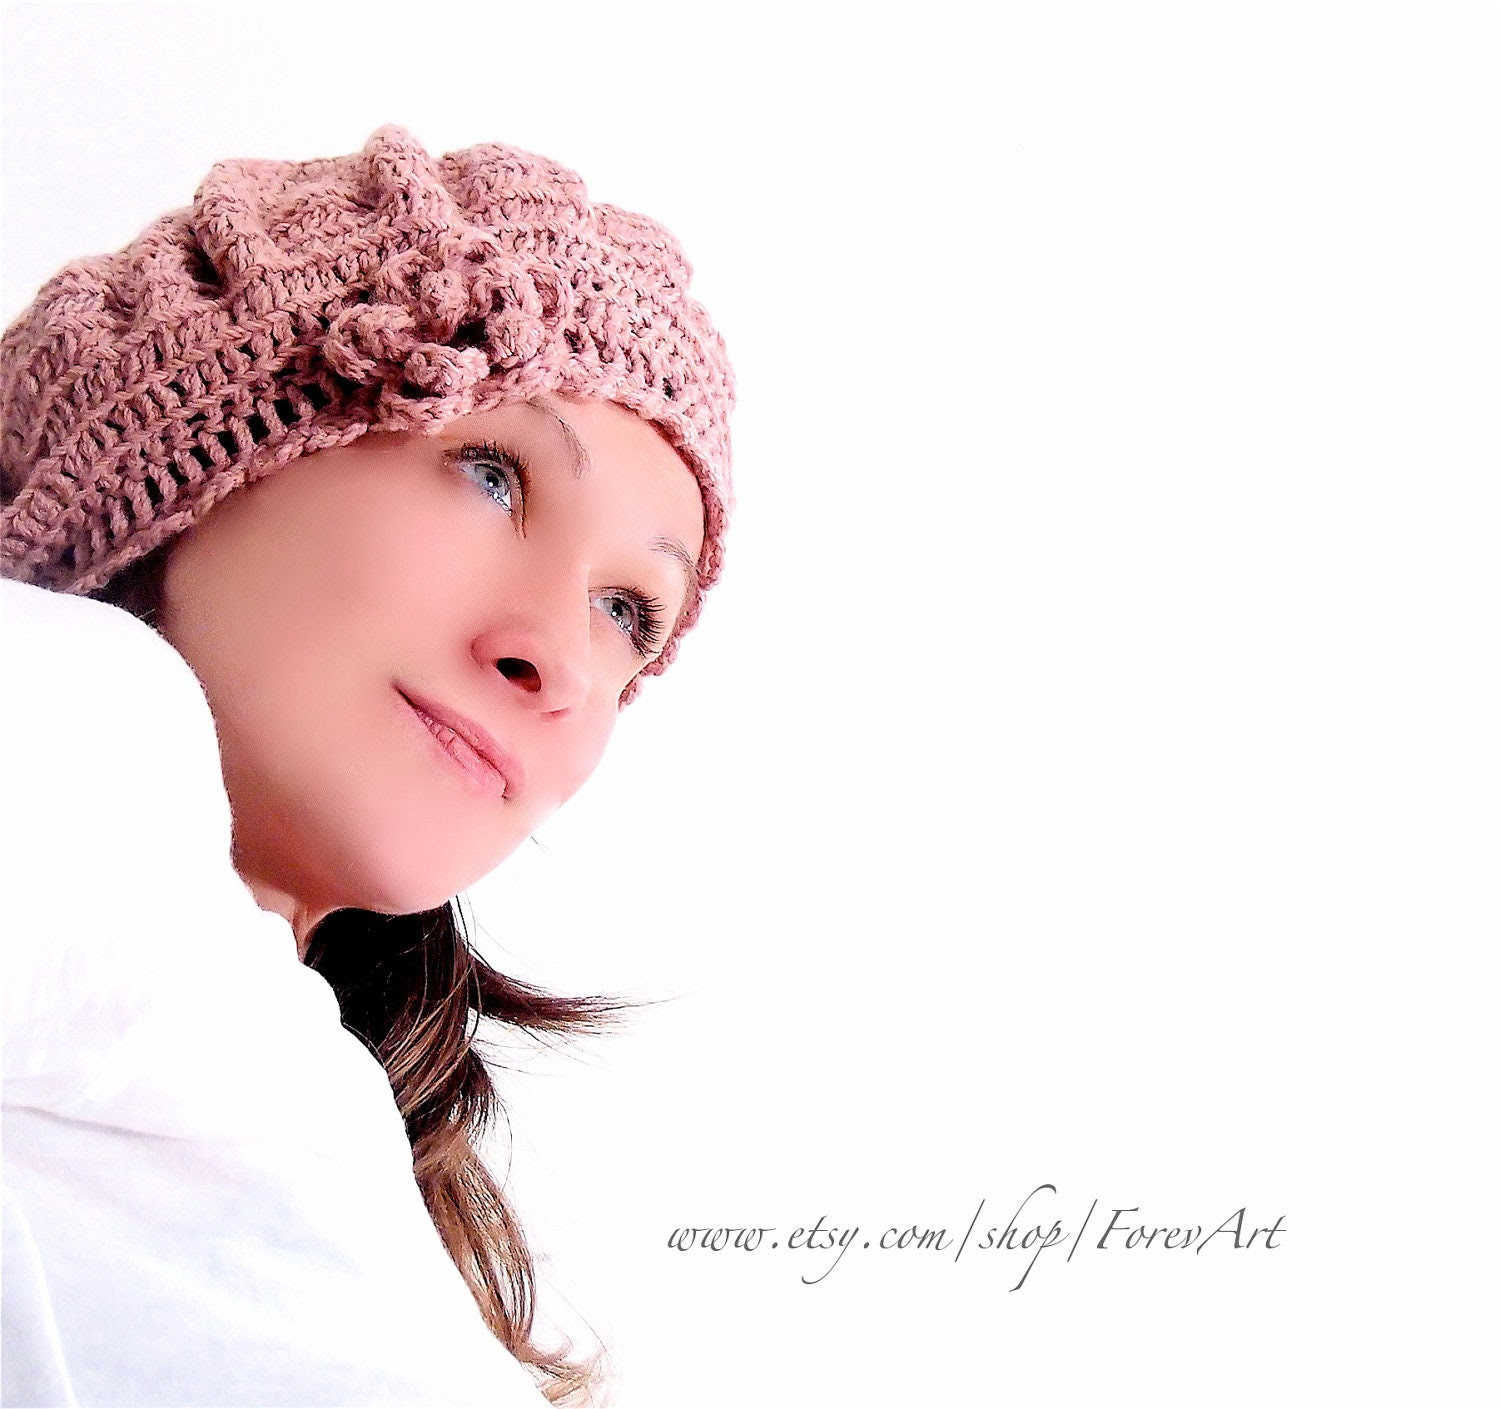 Crocheted cap hat with crocheted flower. Wool crocheted barret. - ForevArt